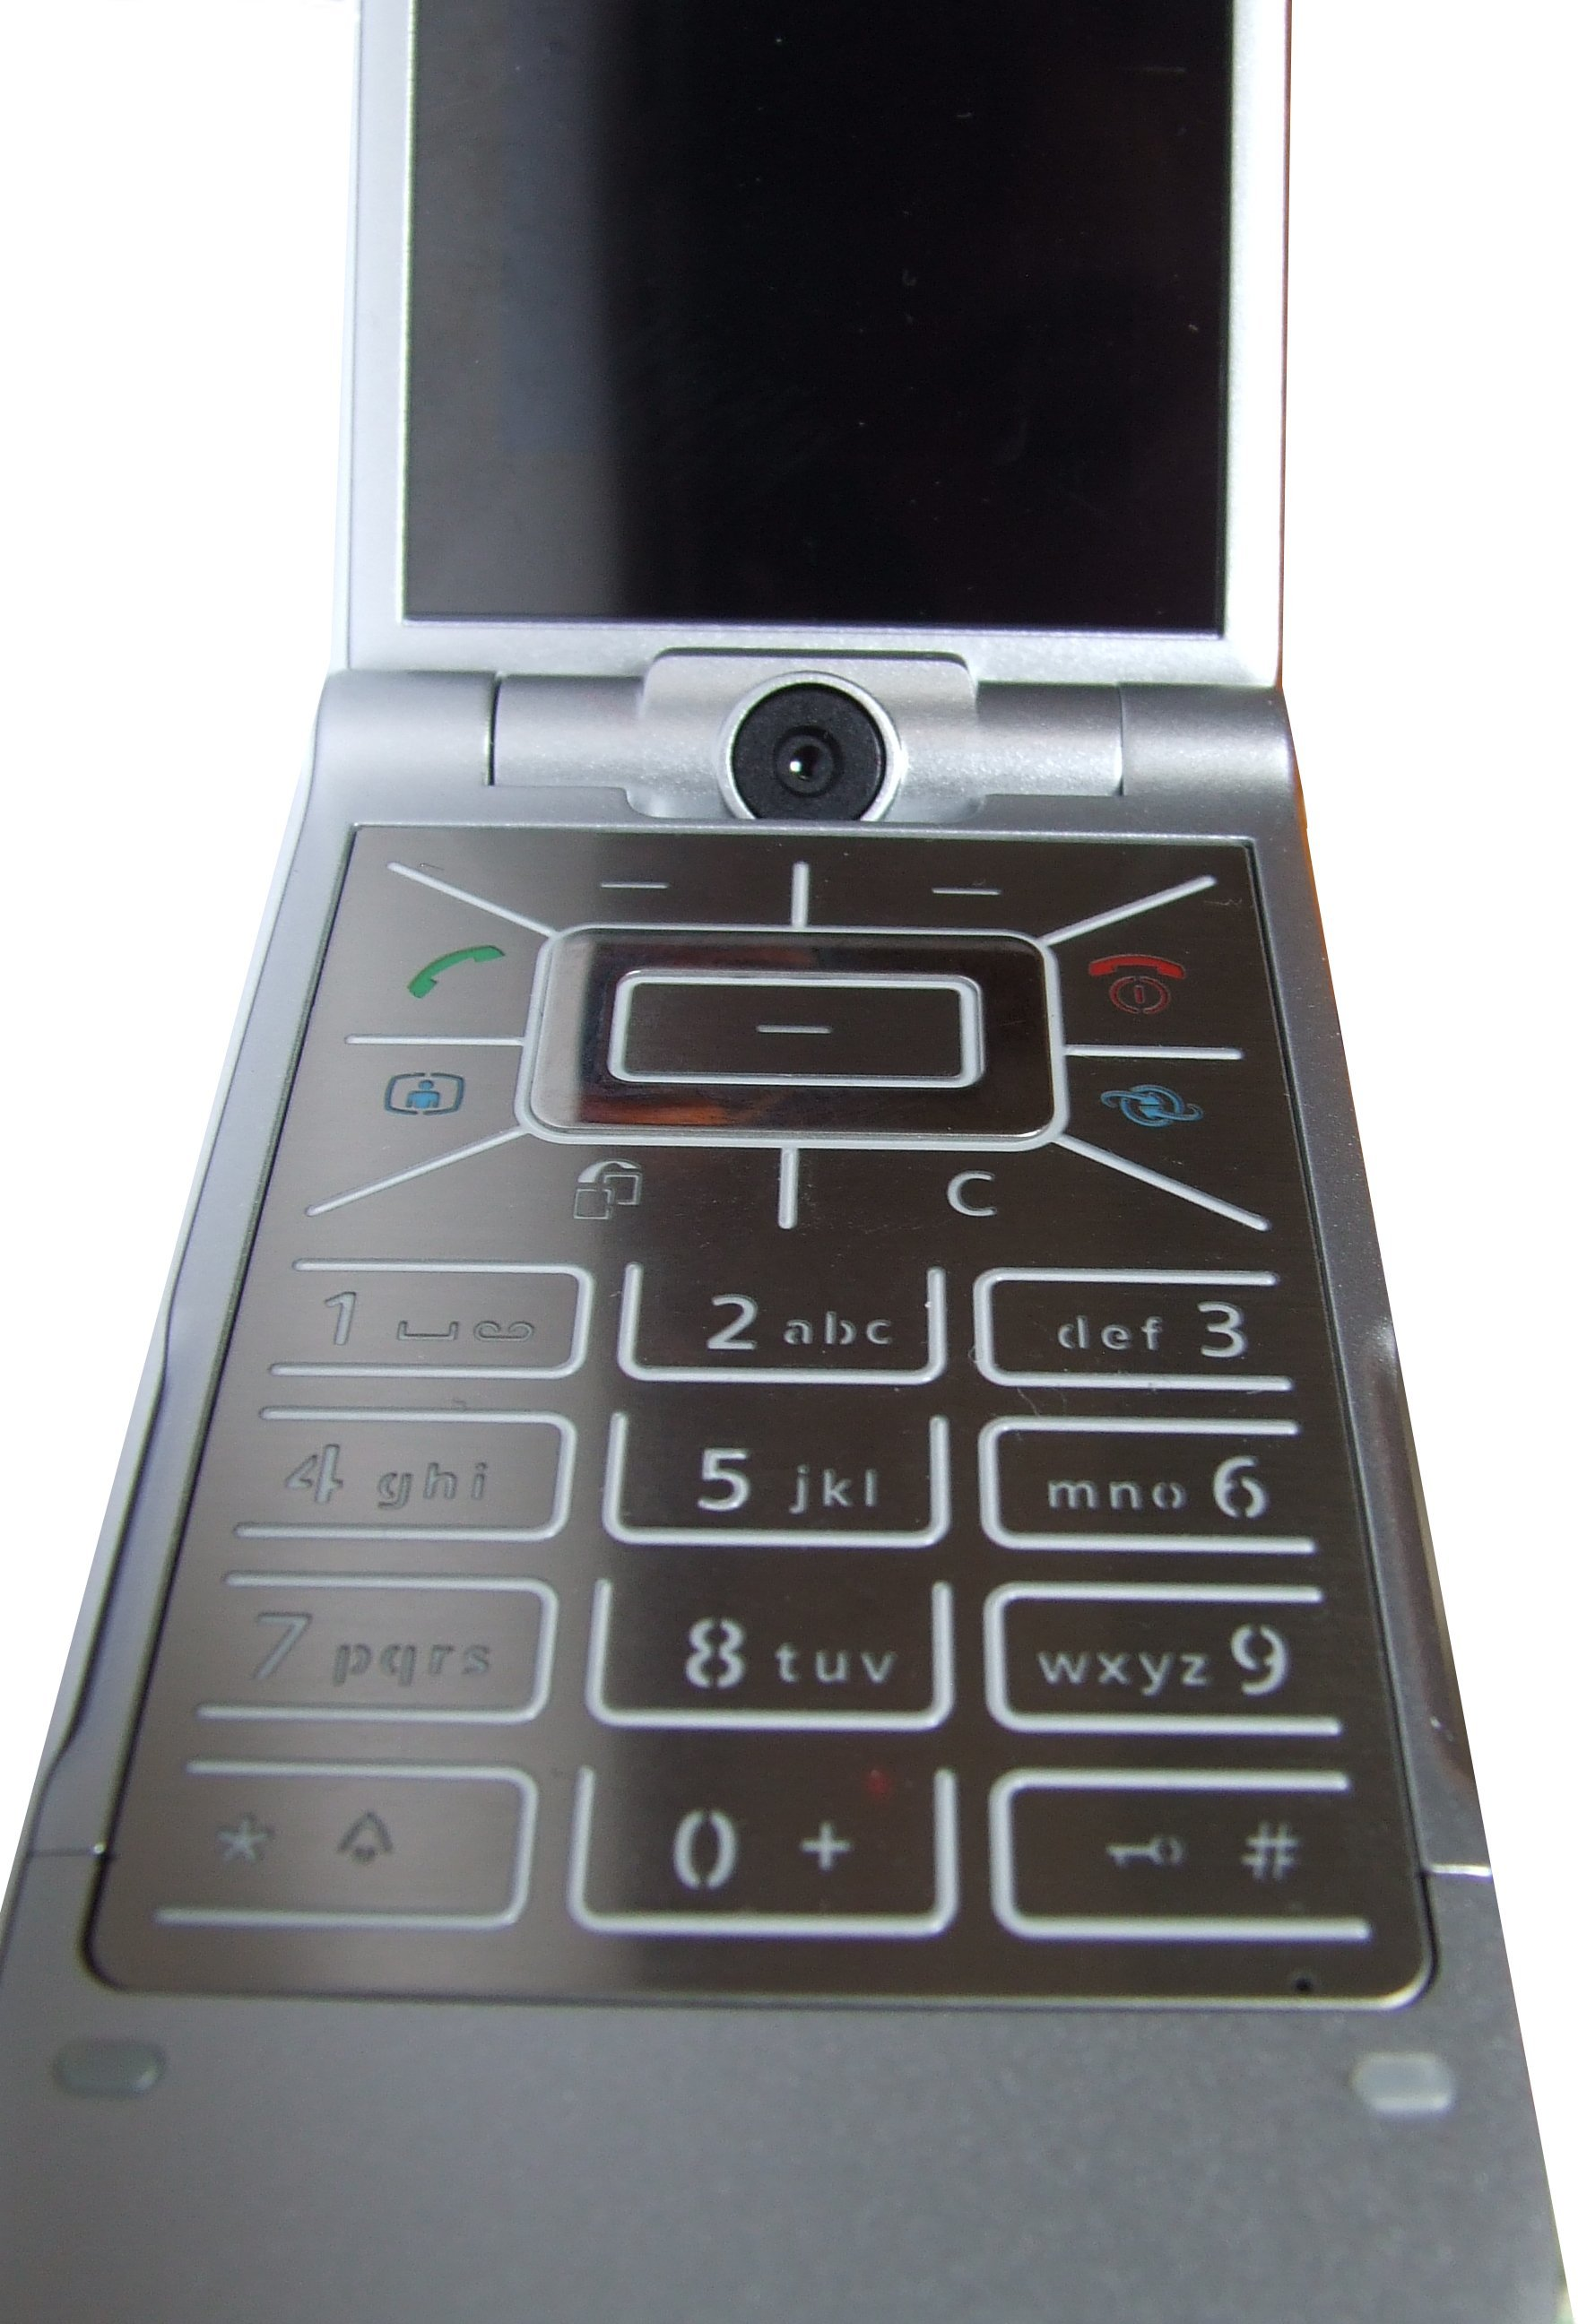 Pin Benq Siemens Ef81 Mobile Pictures on Pinterest